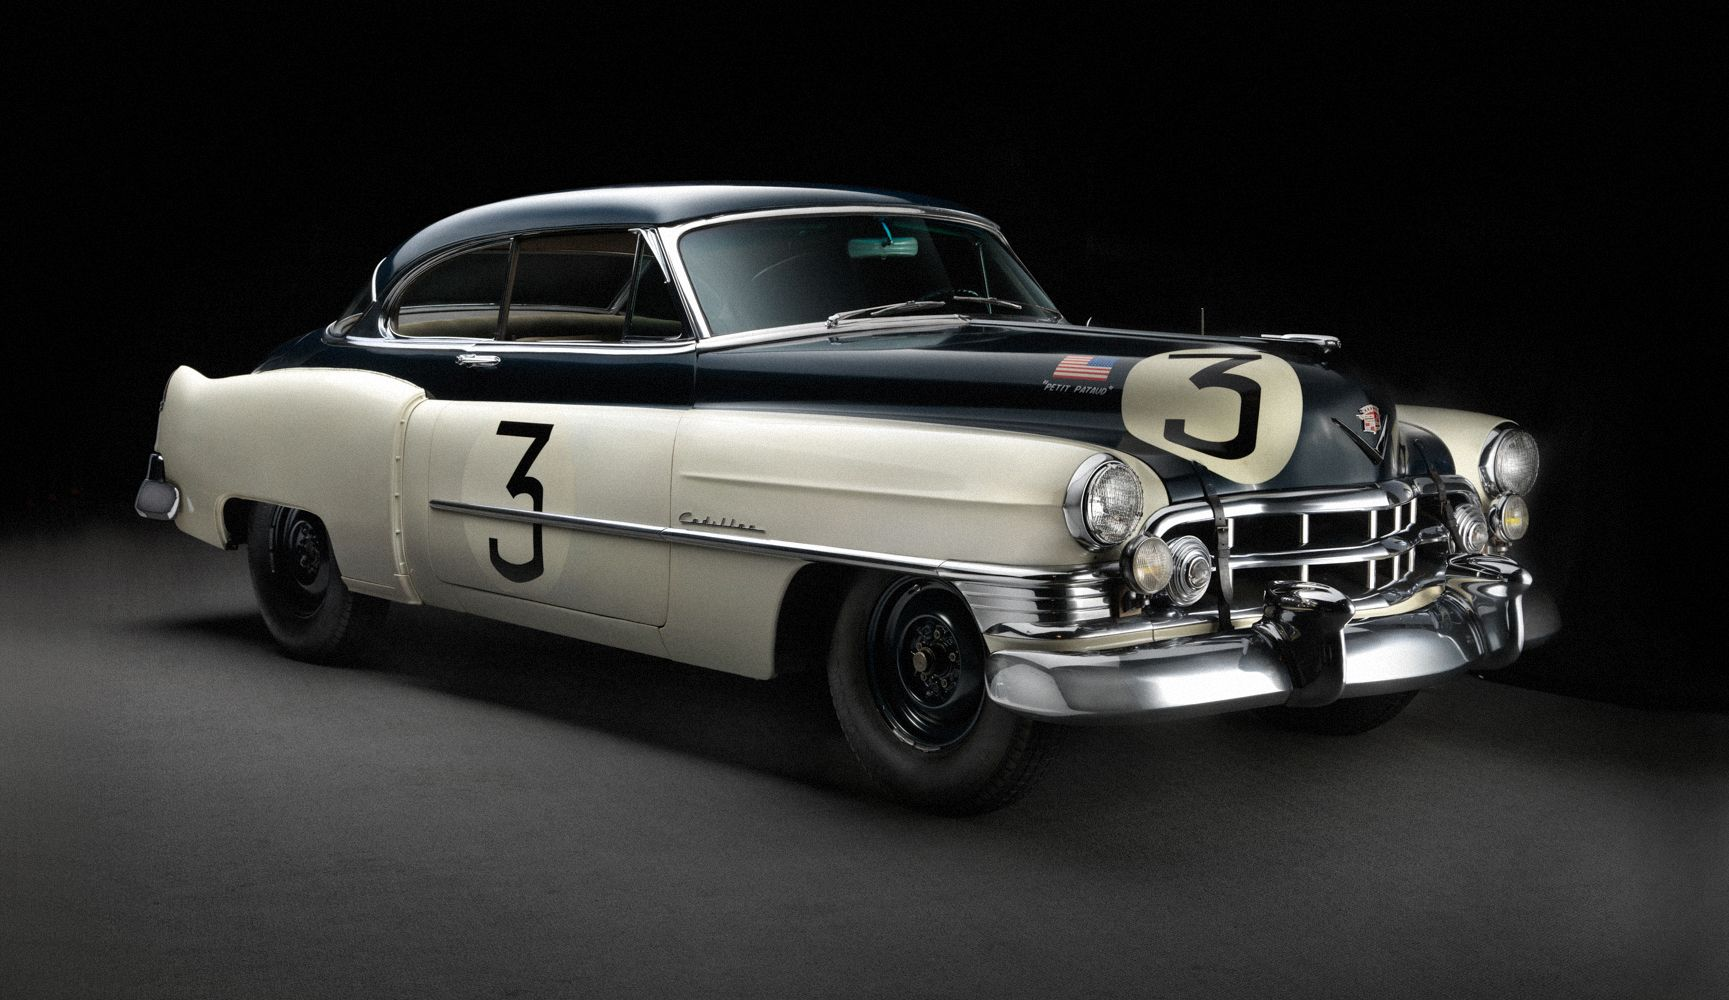 1956 cadillac interior related keywords amp suggestions - 1950 Cadillac Sixty One Coupe Le Mans Race Car